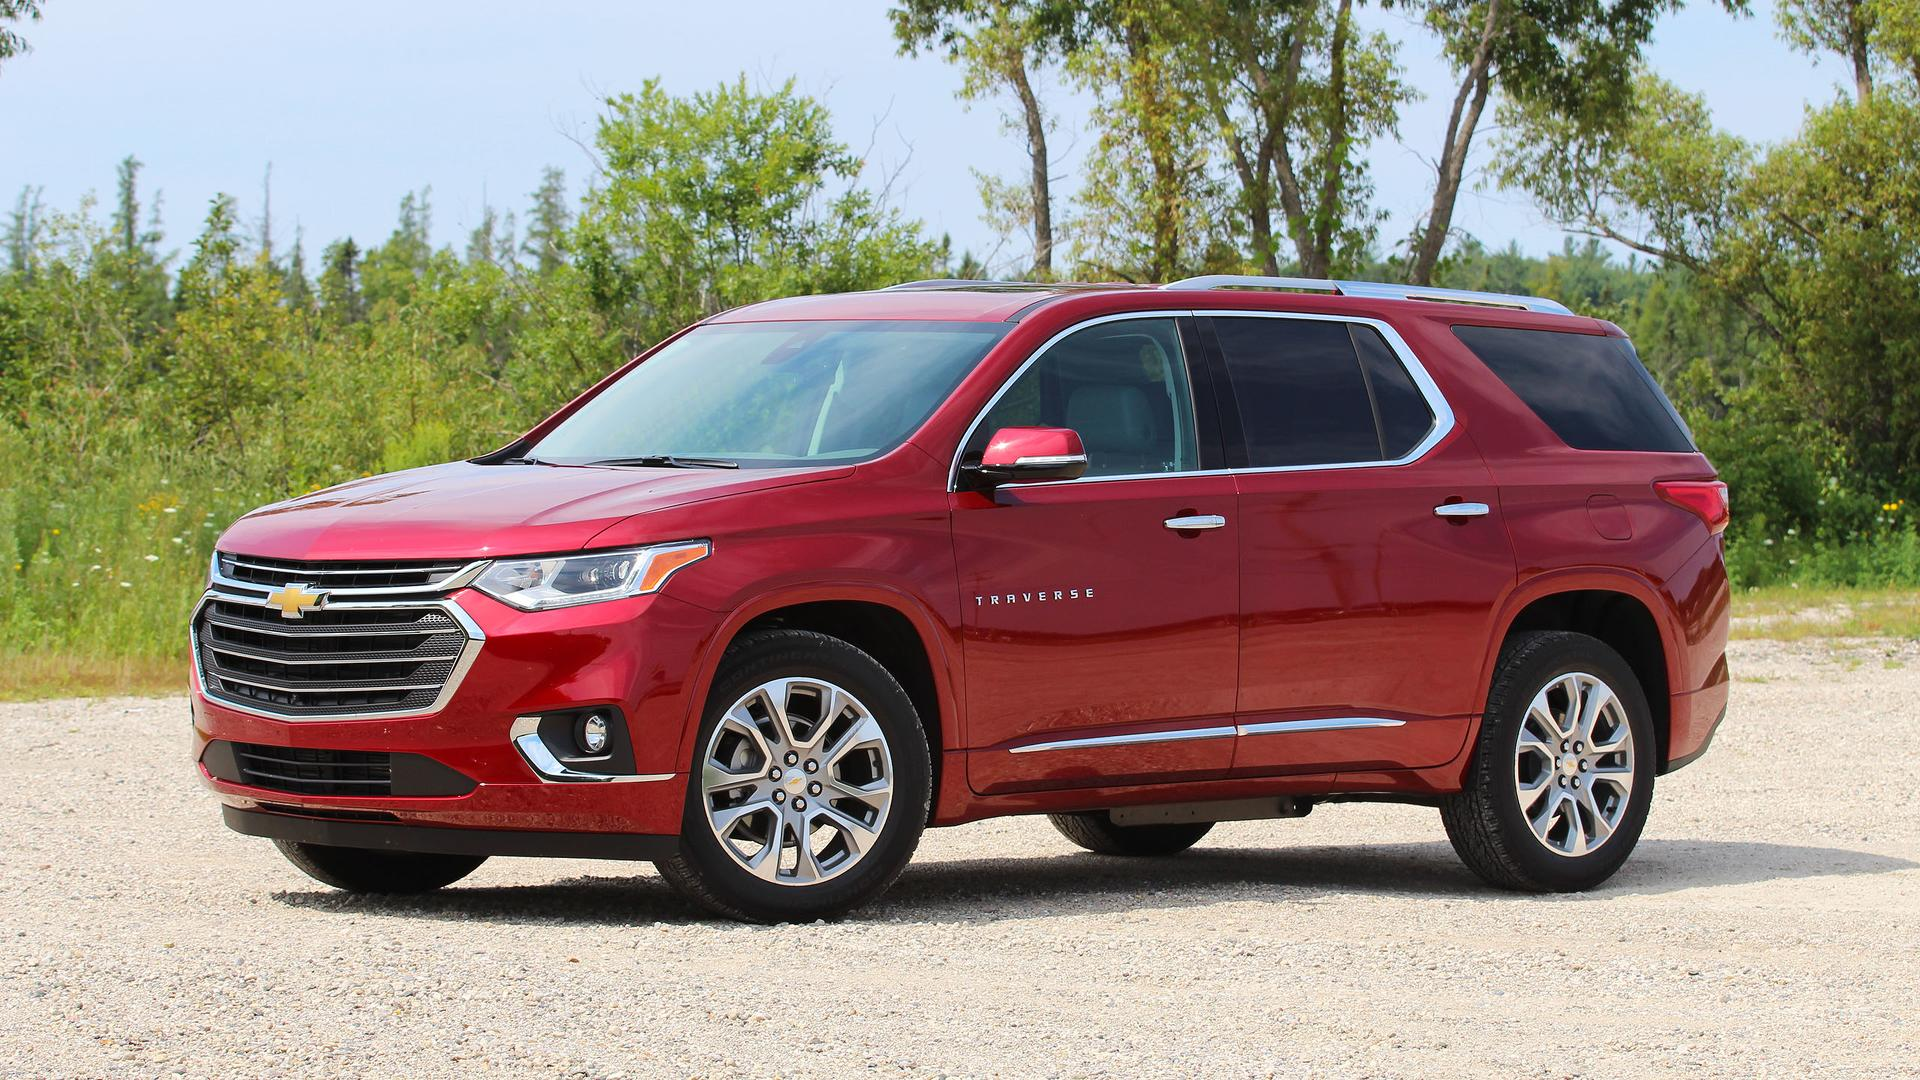 2018 Chevy Traverse First Drive: Go Big And Go Home